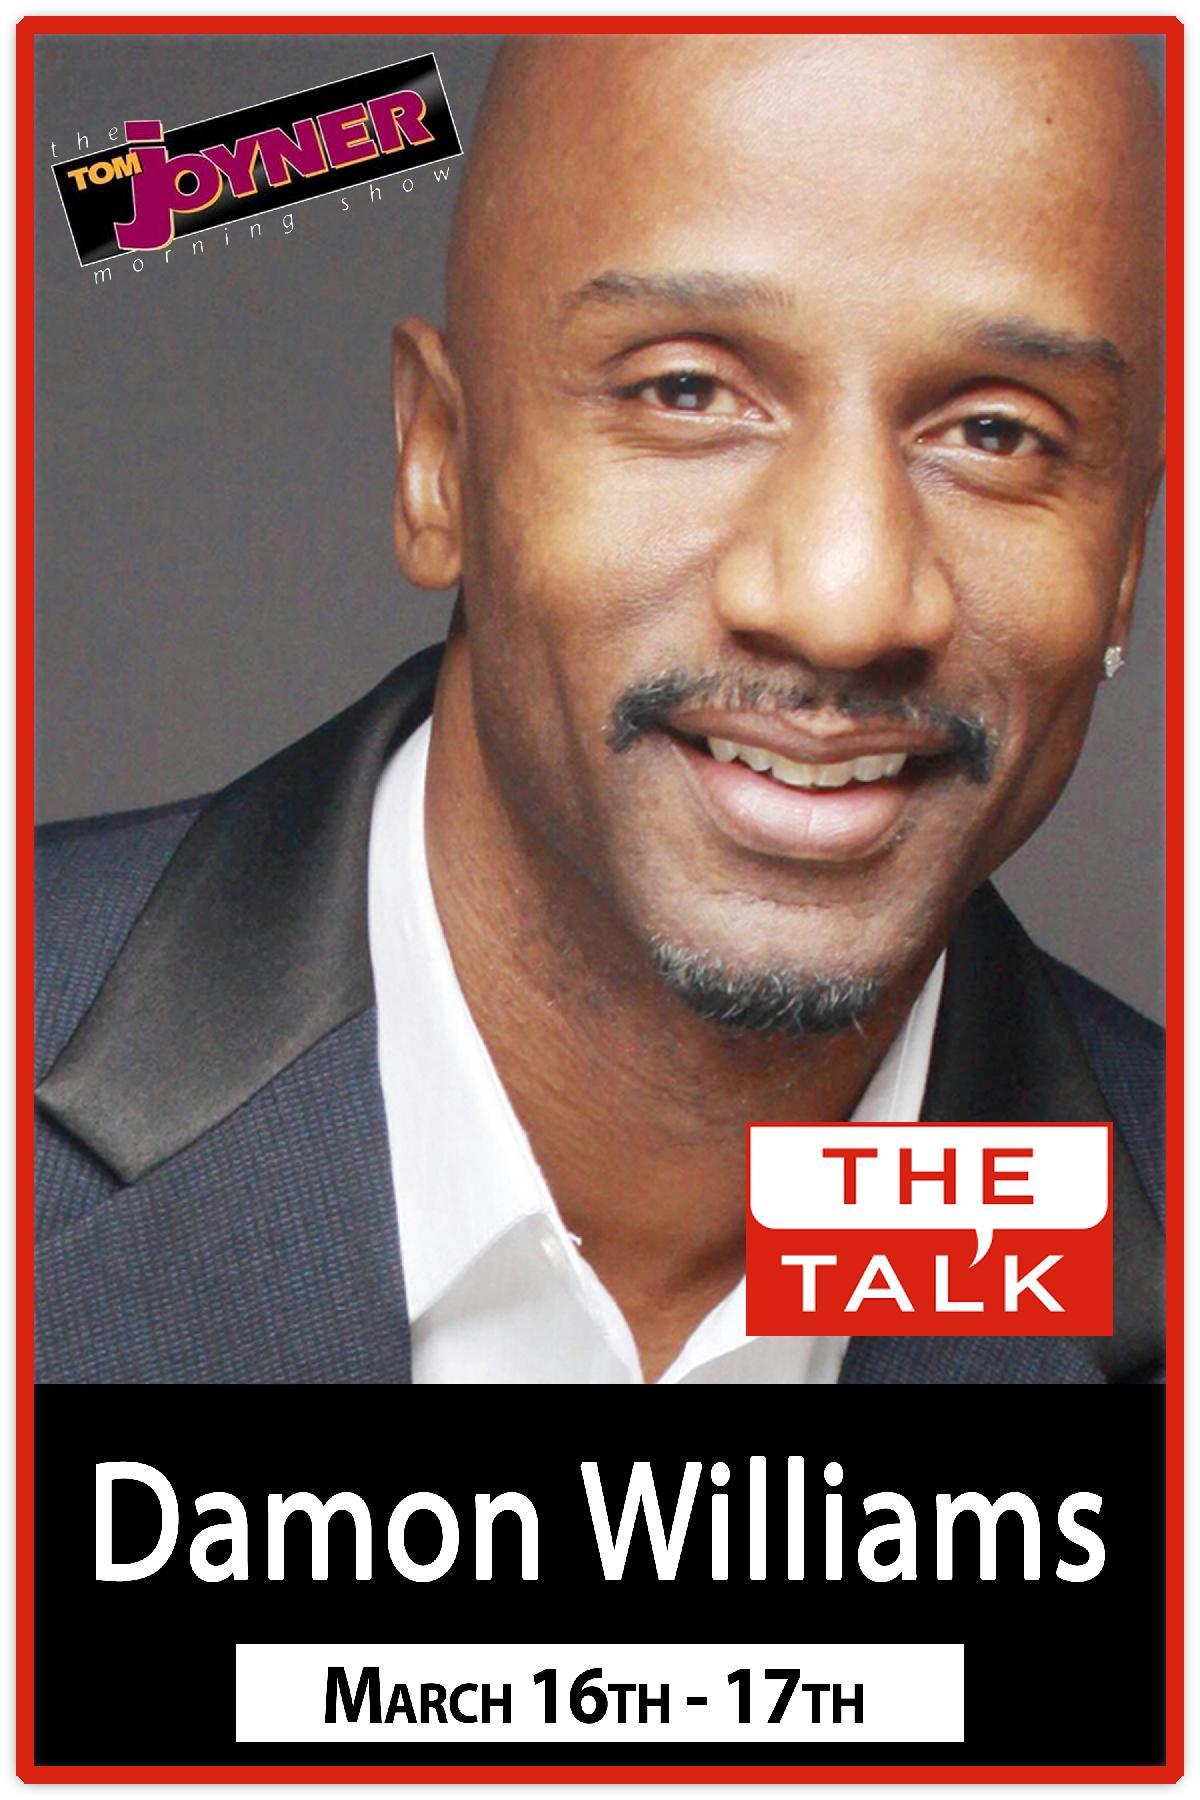 Damon Williams from the Tom Joyner Morning Show and The Talk Live at Zanies Nashville March 16 & 17, 2016